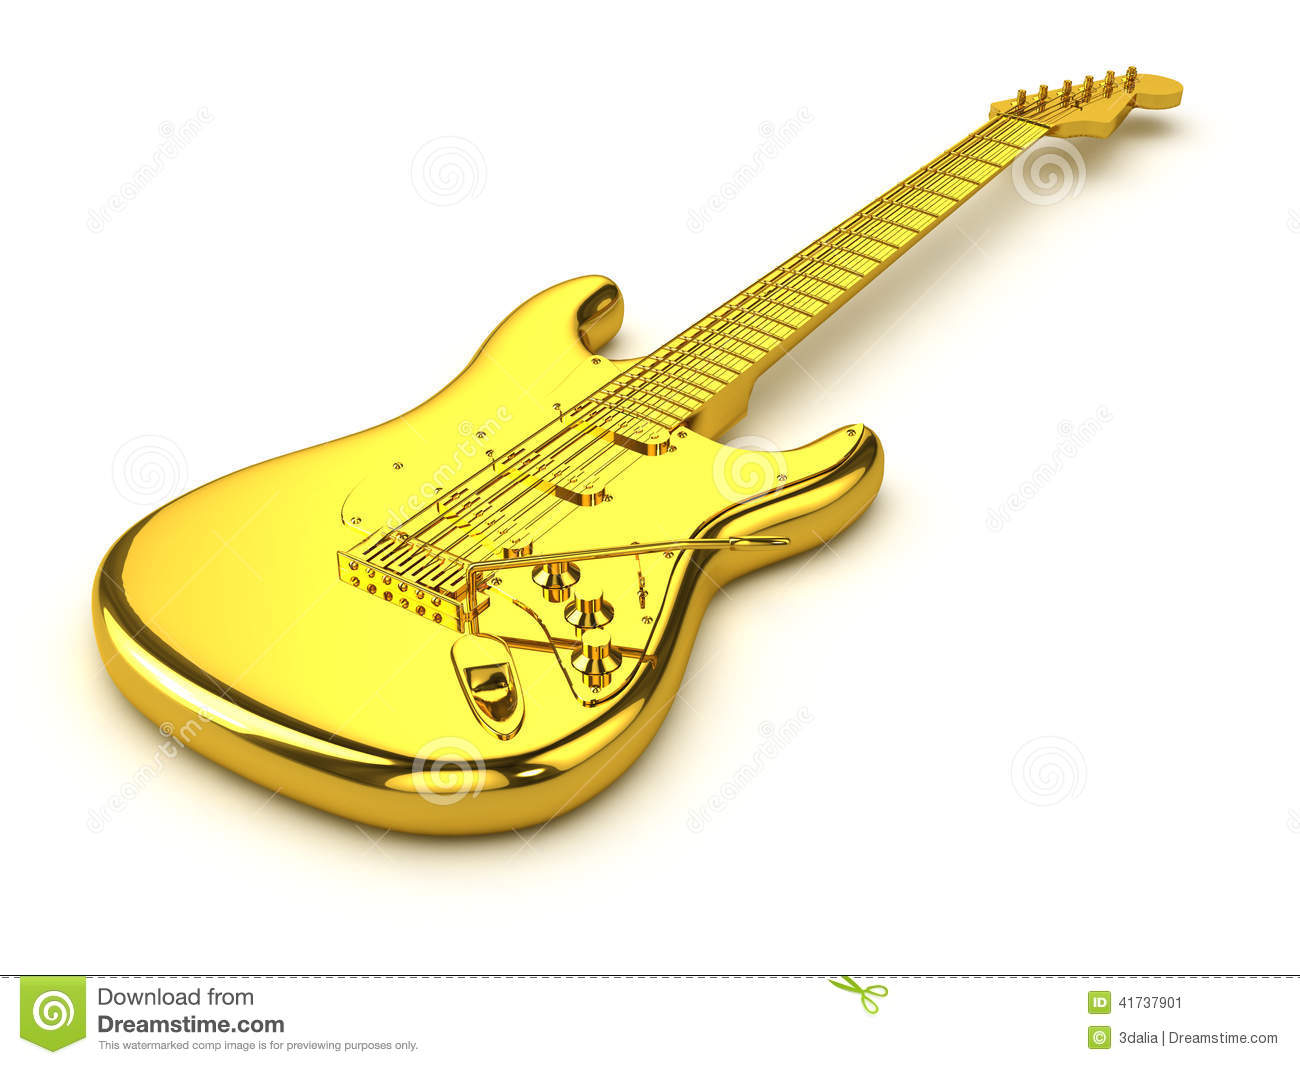 d-gold-electric-guitar-render-41737901.j